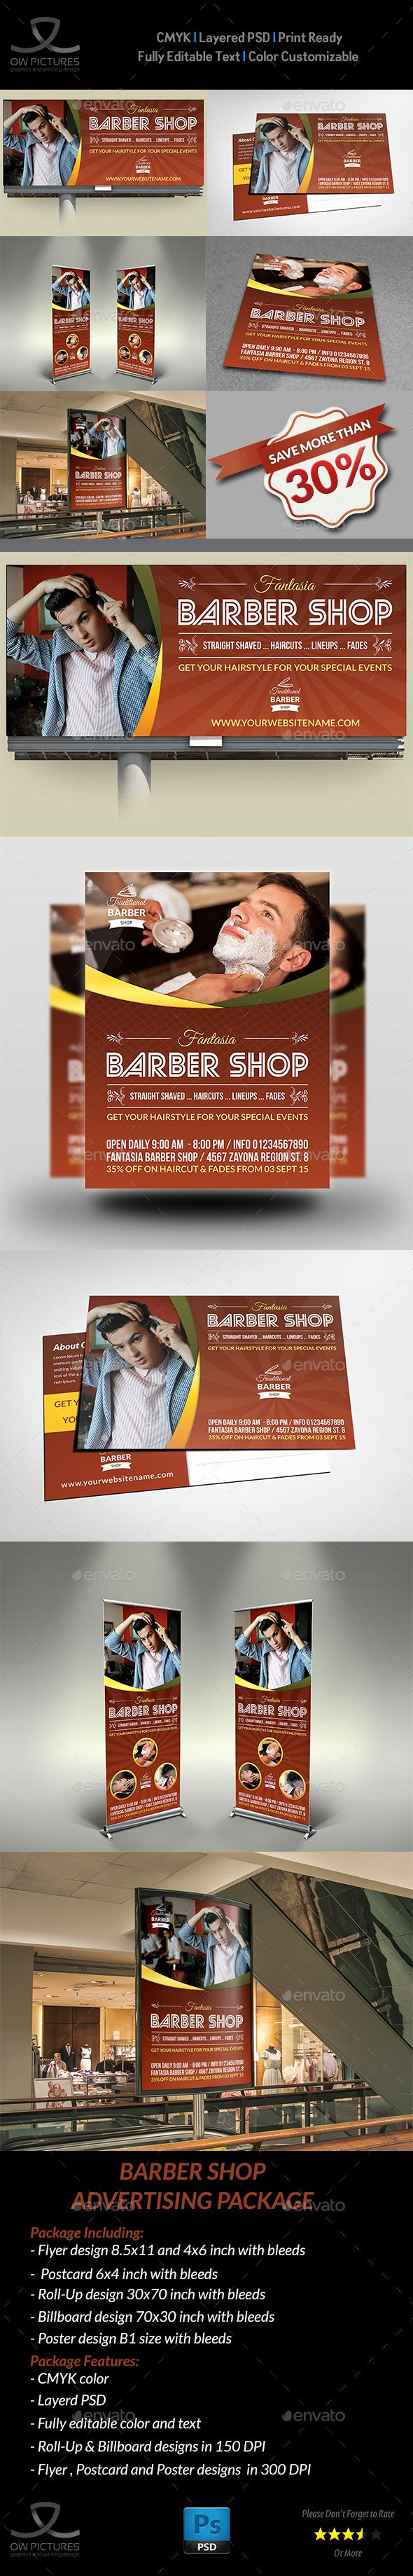 38 best print images on pinterest postcard template postcard barber shop advertising bundle pronofoot35fo Image collections